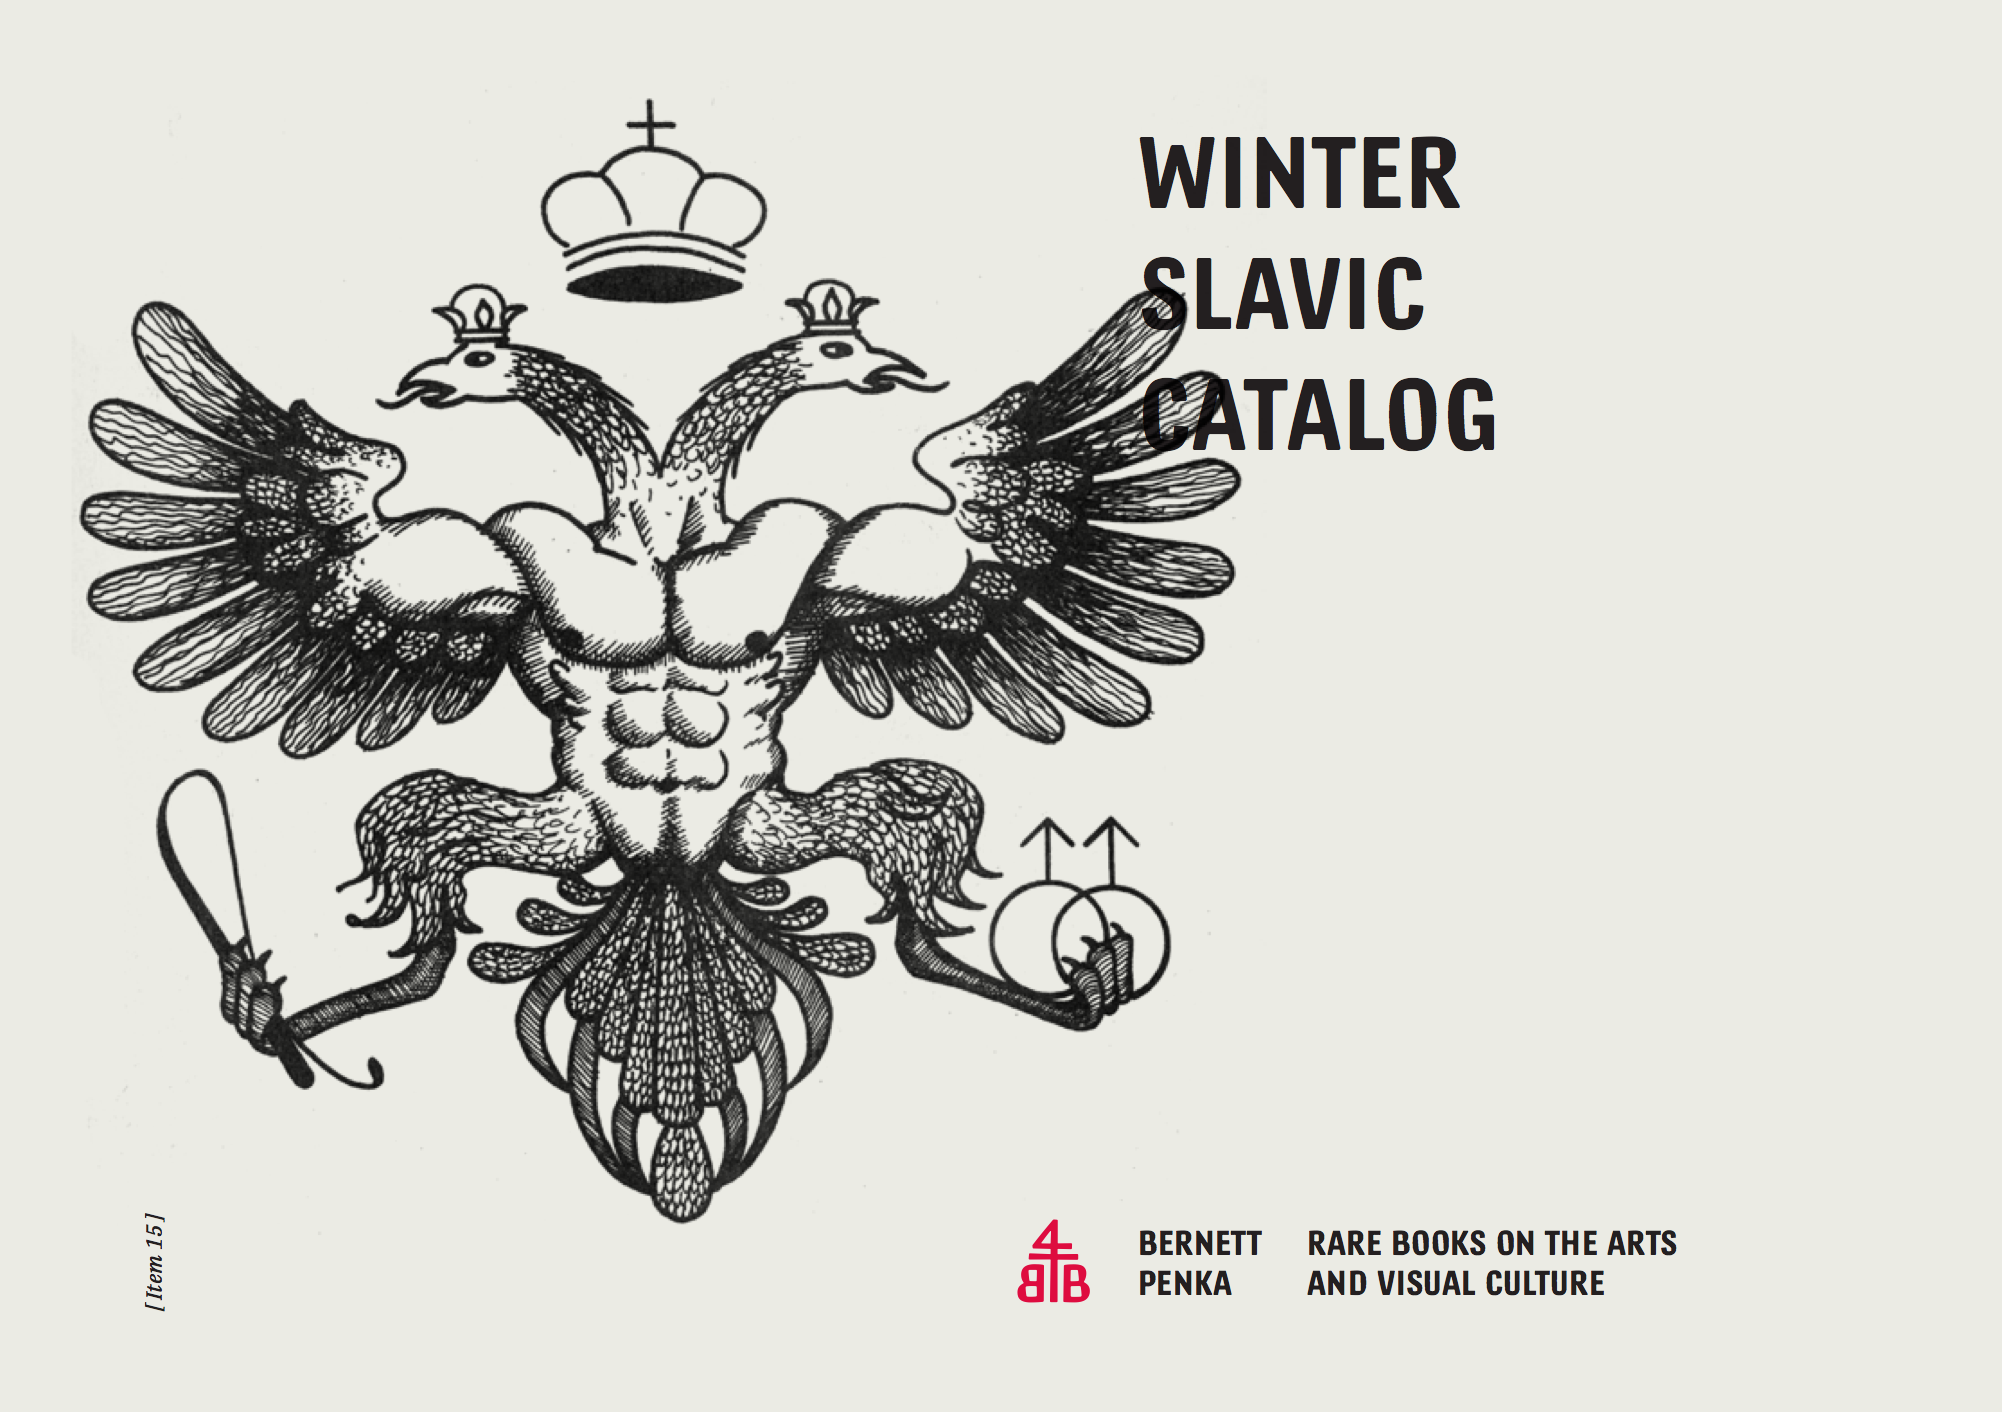 Winter Slavic Catalog